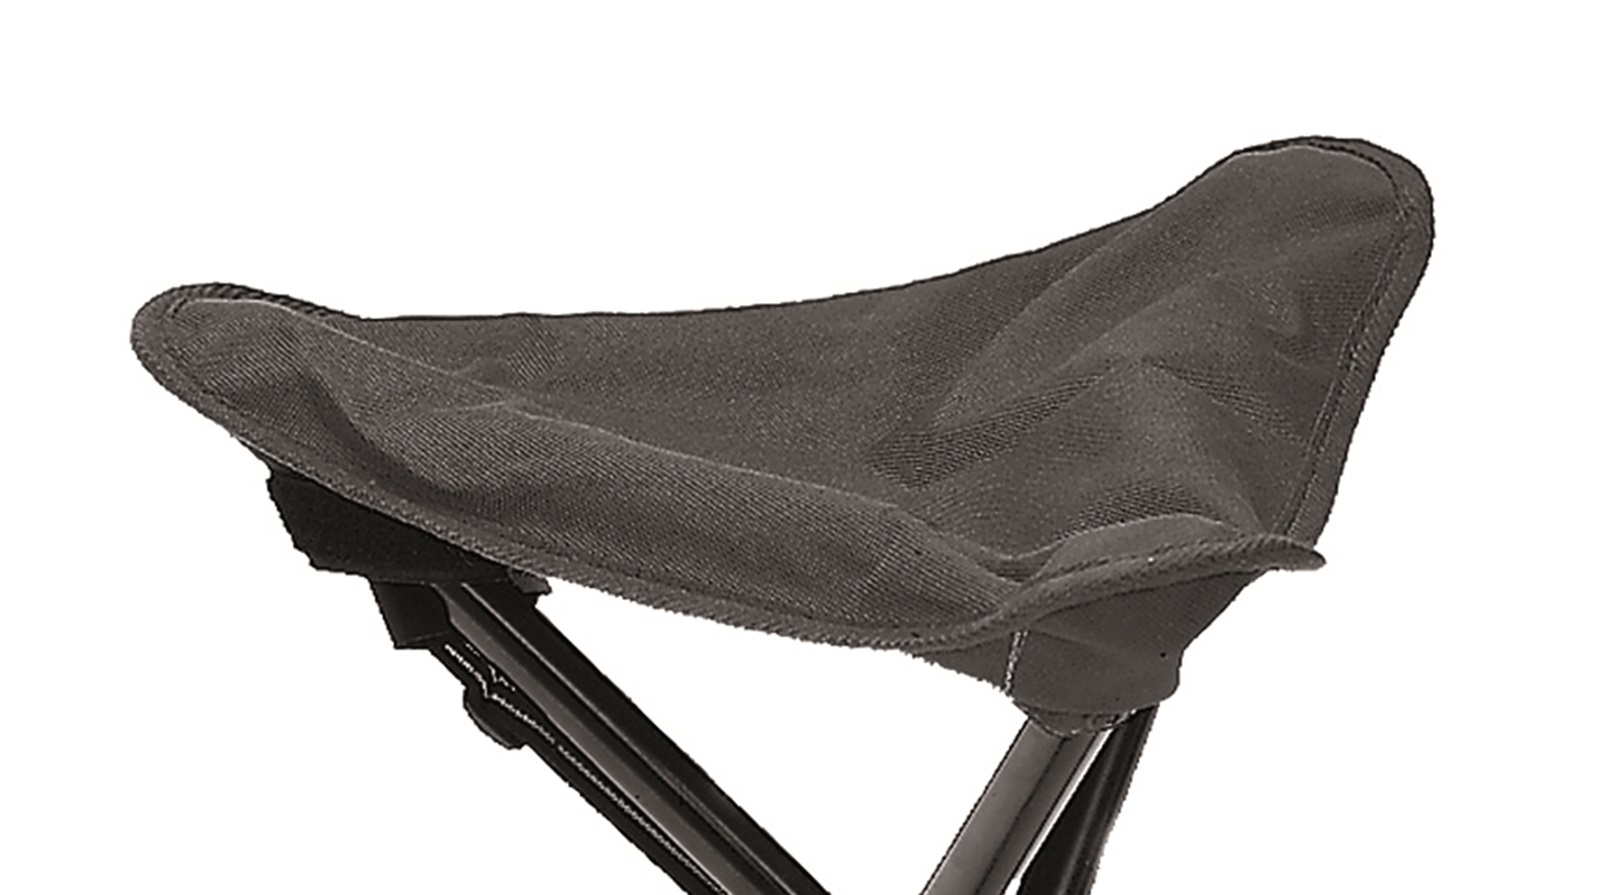 Hocker Outdoor Dreibein Klapphocker Schwarz Outdoor Hocker Konkurse Zerbst